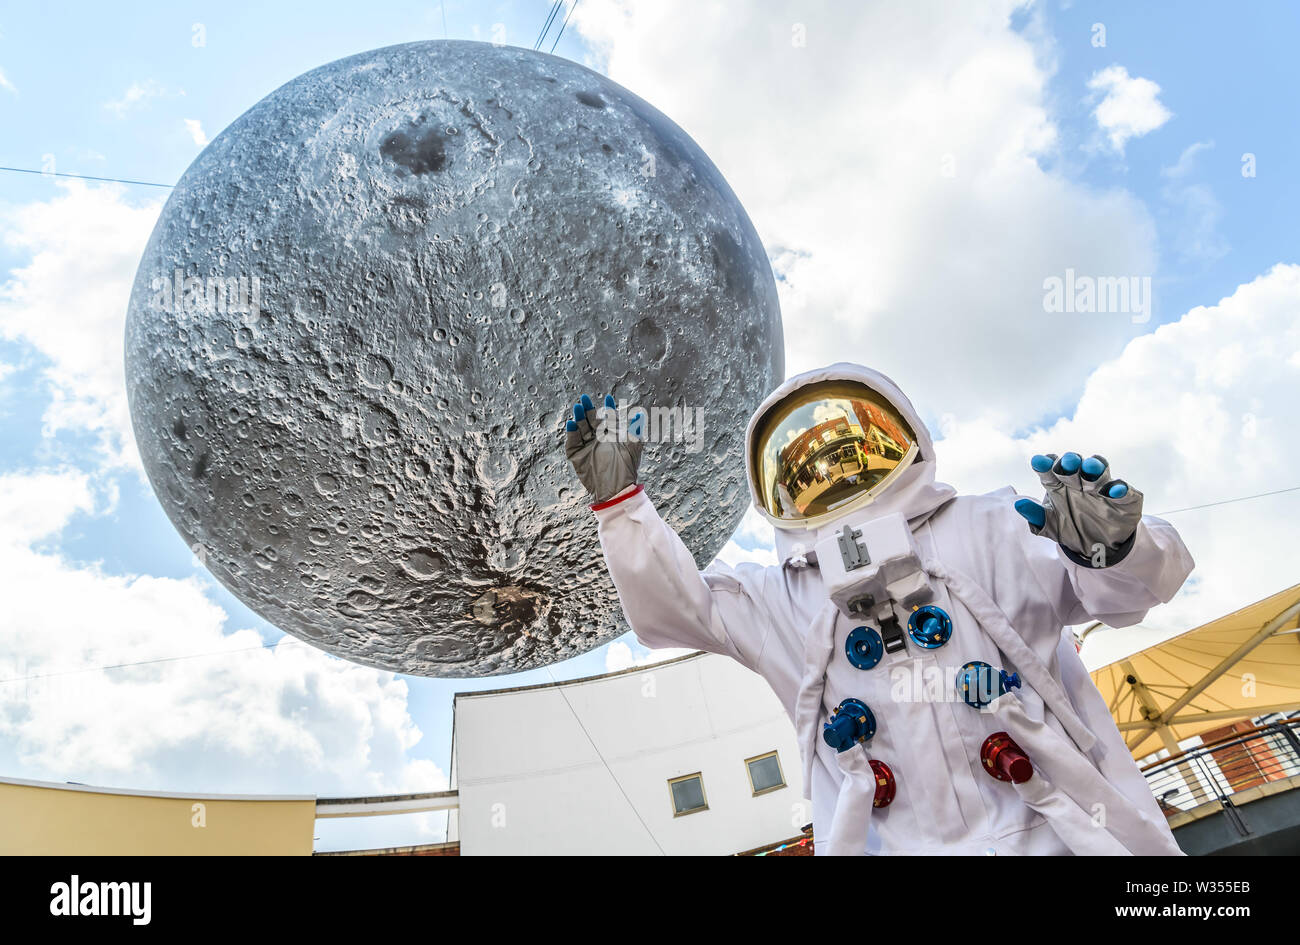 Birmingham, UK. 12th July 2019. Summer in Southside blasts off into space for this years free family festival. To celebrate 50 years since the first moon landing, Birmingham Hippodrome and surrounding areas will be transformed into a lunar landscape for the whole weekend. Birmingham HippodromeÕs free two-day family festival Summer in Southside will take place on Saturday 13 and Sunday 14 July 2019. This year the festival will explore the spectacle and wonder of Outer Space. Credit: Simon Hadley/Alamy Live News - Stock Image